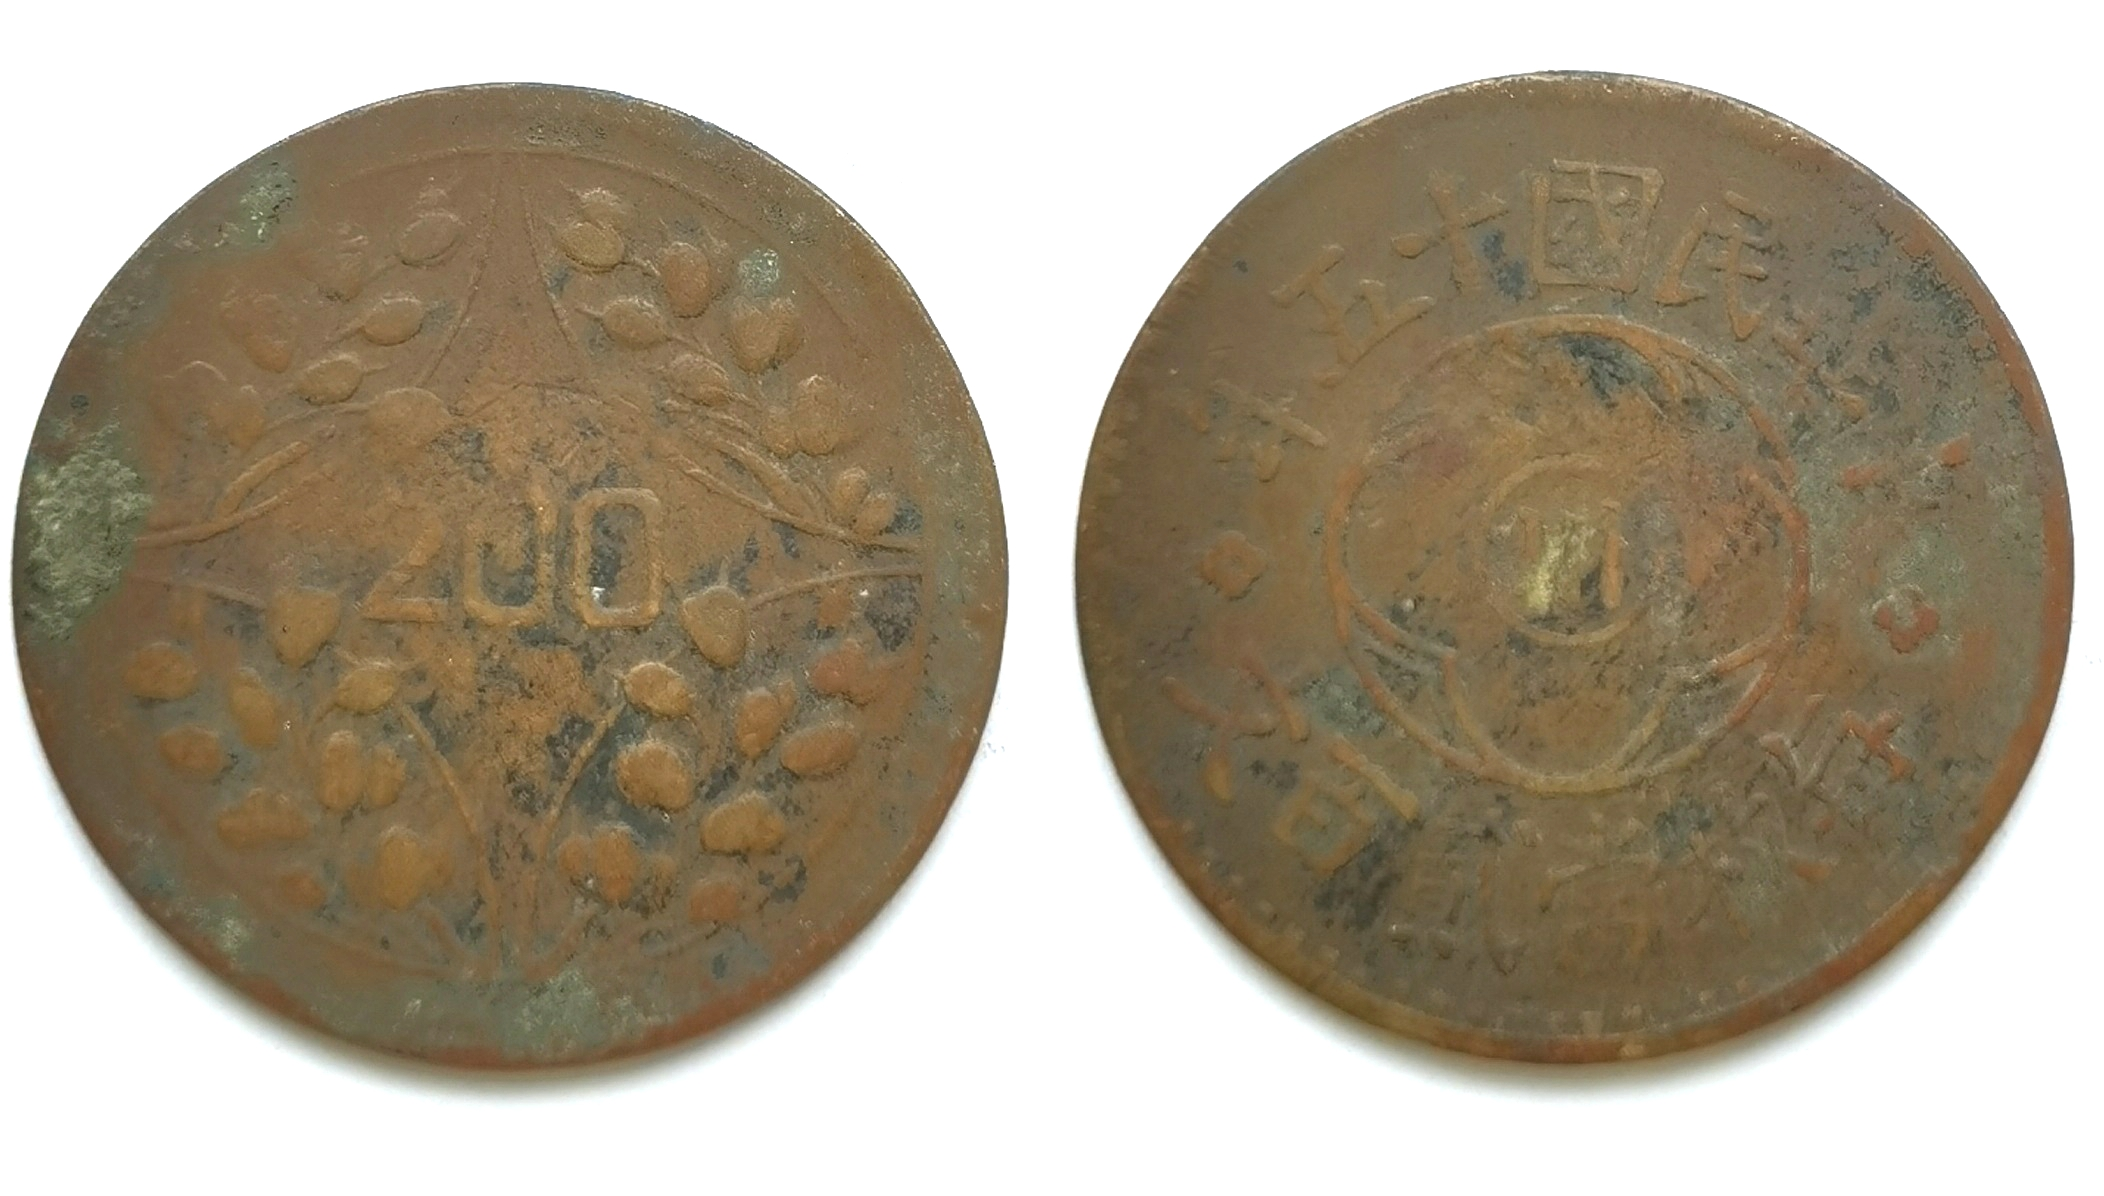 K5241, Szechuan (Si-Chuan) Province 200 Cash Coin, China 1926 Copper